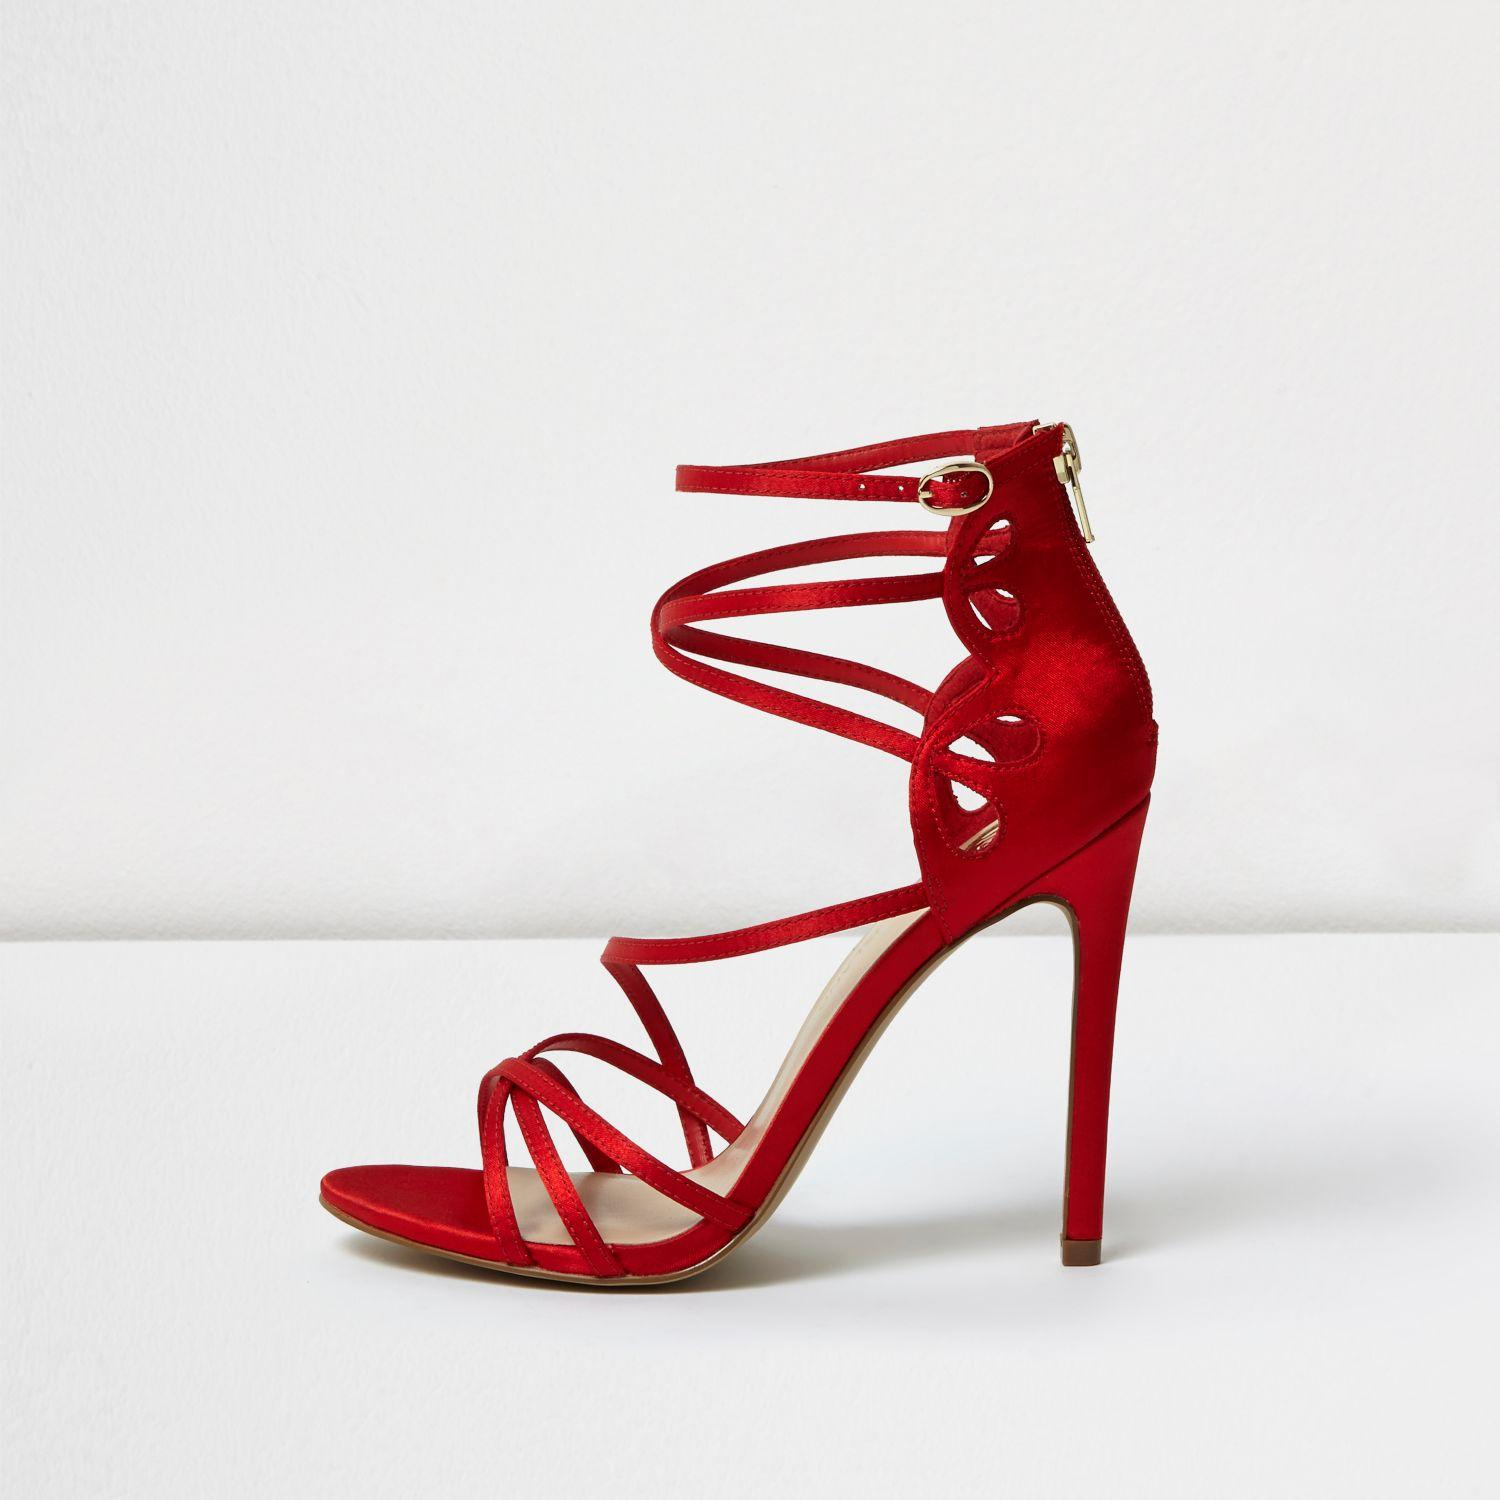 363148d8b96a Lyst - River Island Red Satin Finish Caged Sandals in Red